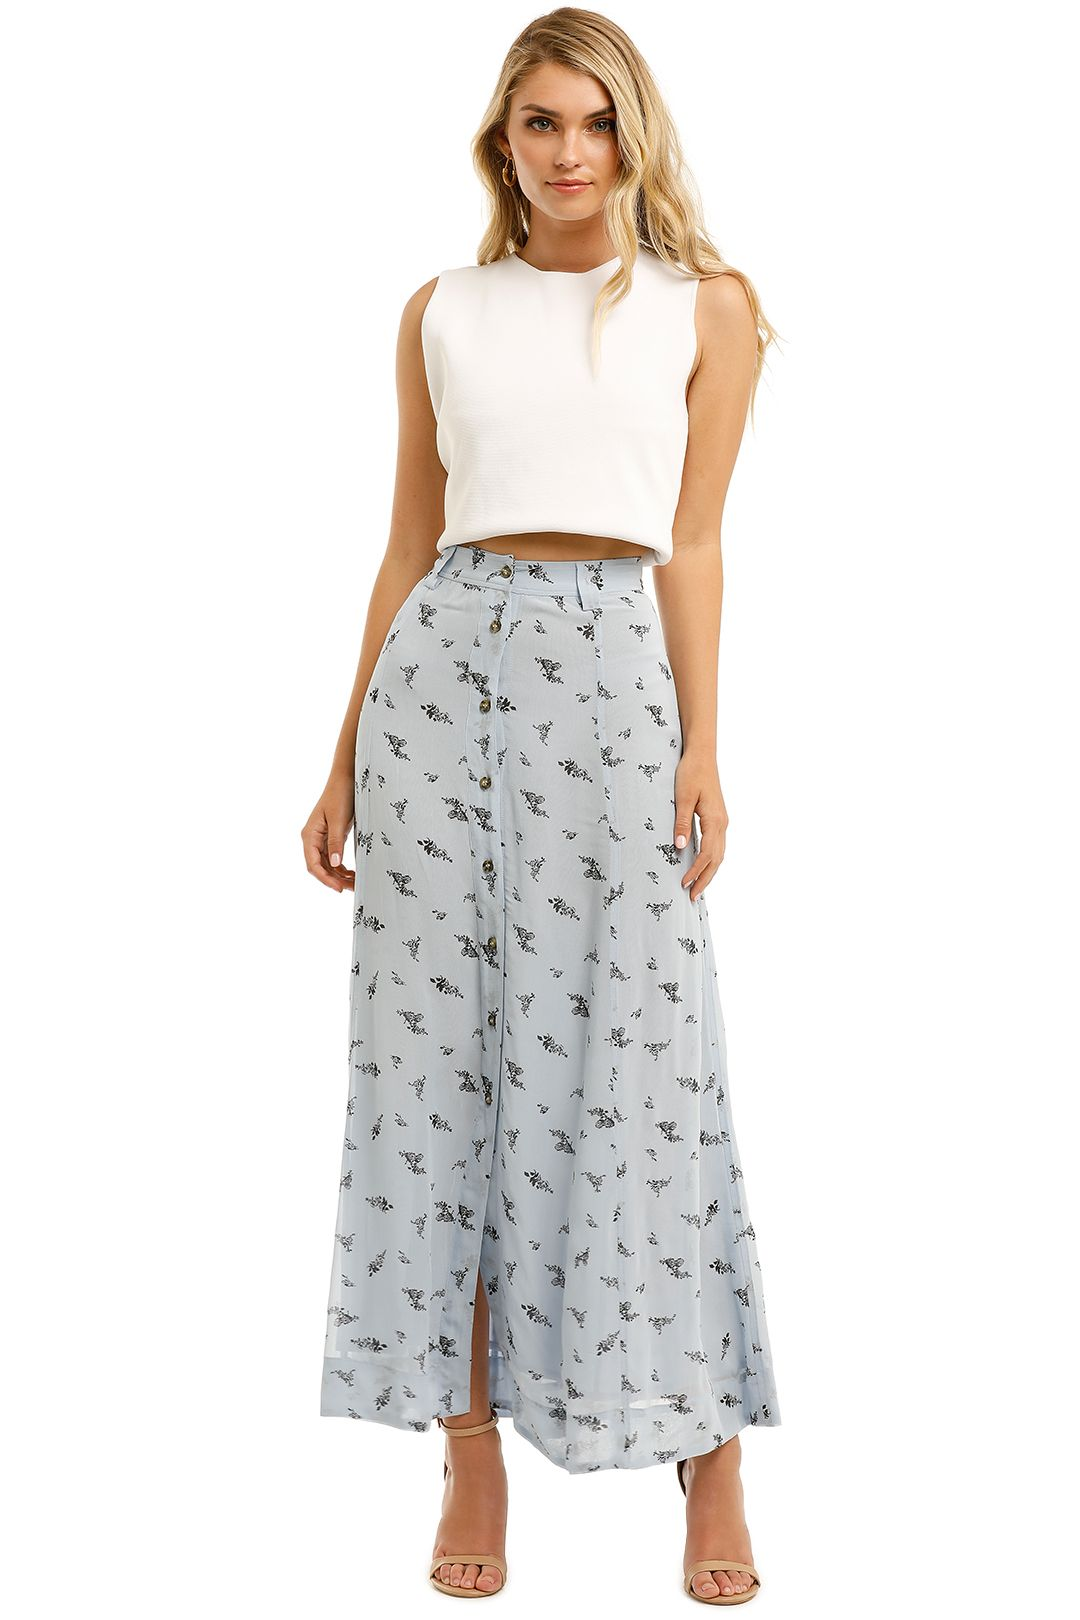 Ganni-Printed-Georgette-Long-Skirt-Brunnera-Blue-Front